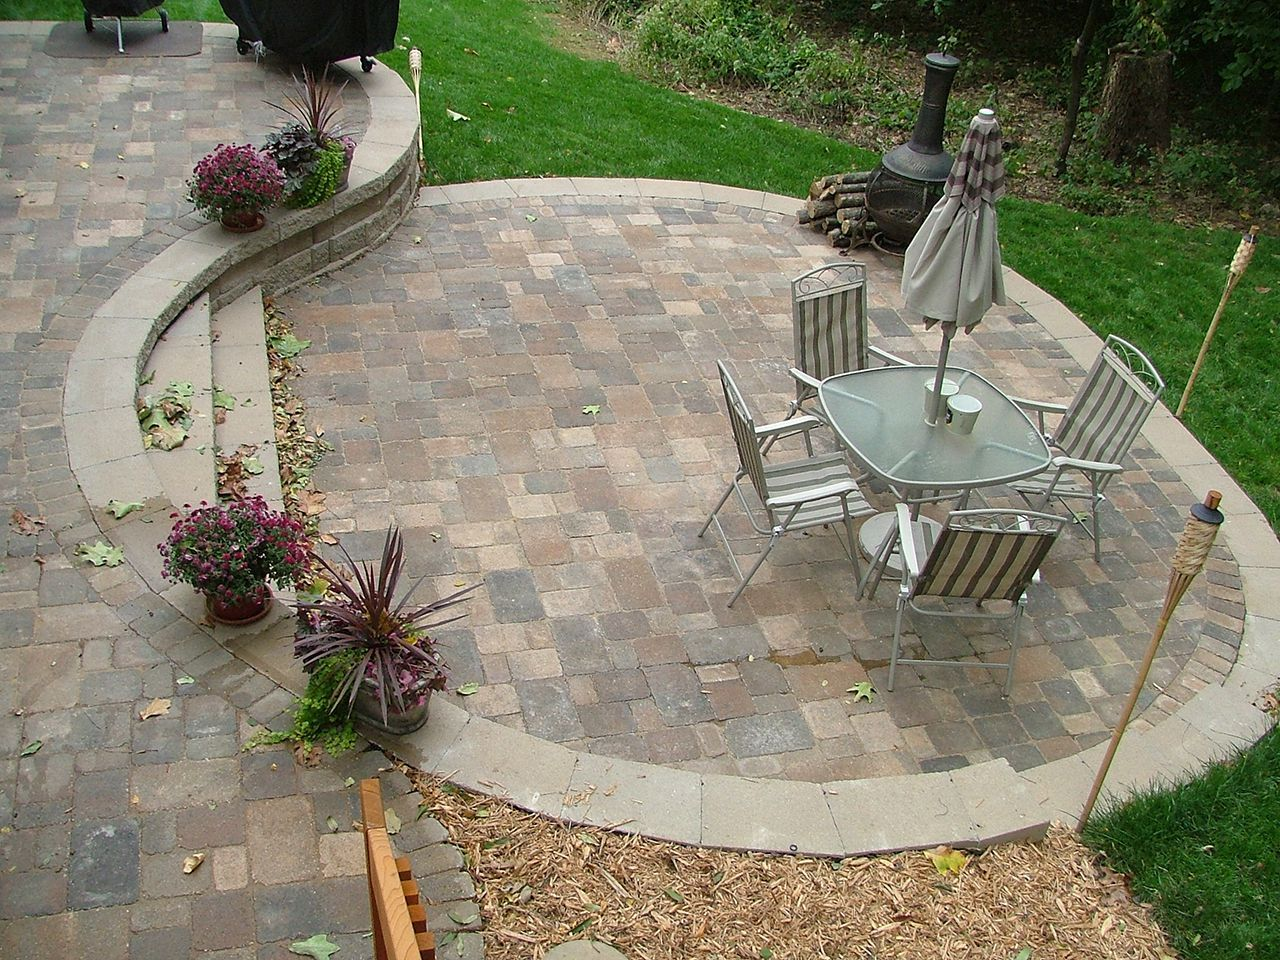 have near does me benefits of services oregon diy lewis to patios how concrete paver portland cost landscape brick much architecture square it vs installation in build many patio cover installed stamped pavers companies foot